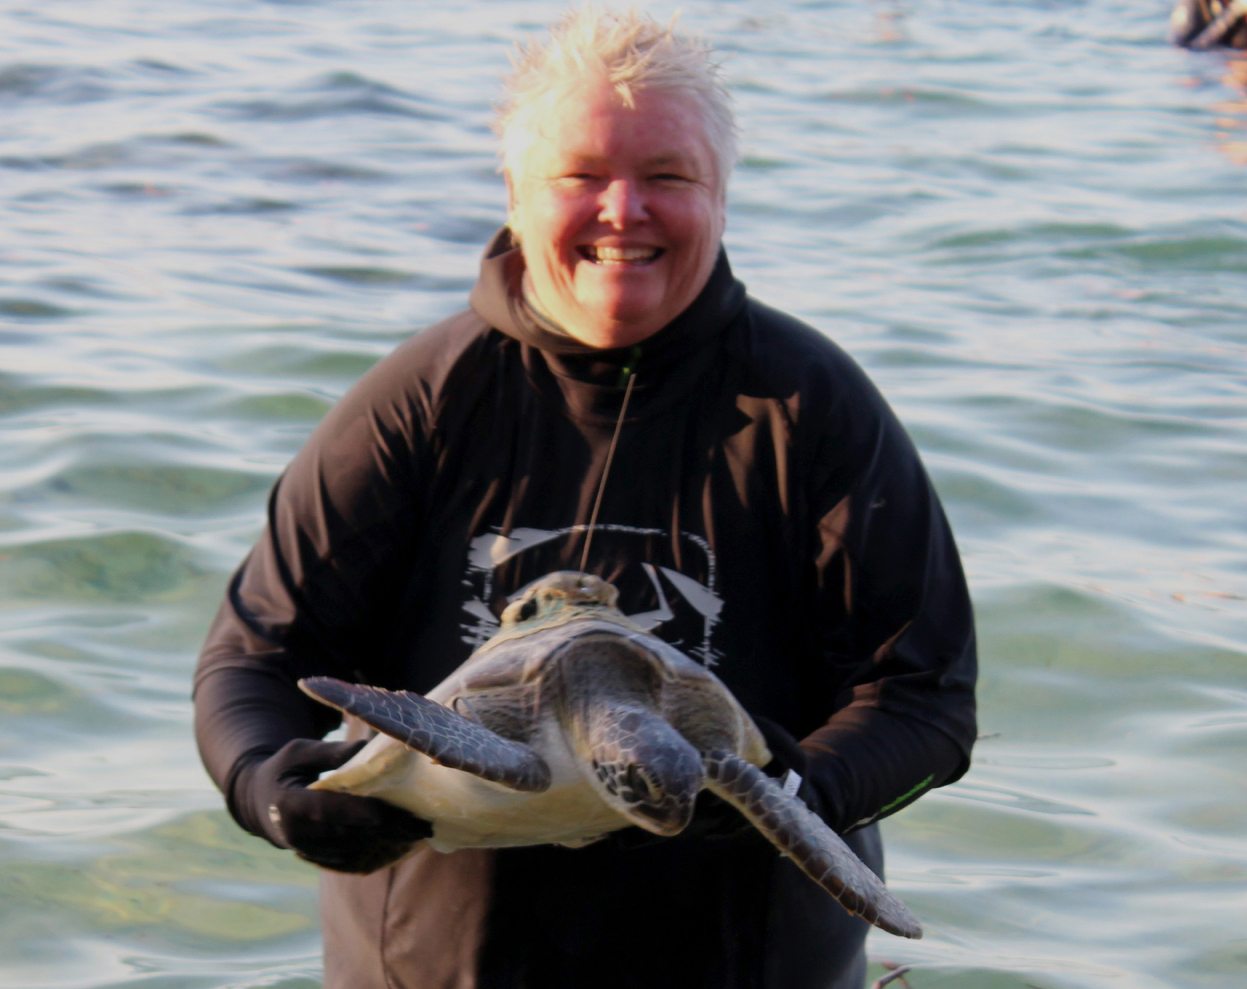 Tania Rossiter with Kelpie the Green Turtle